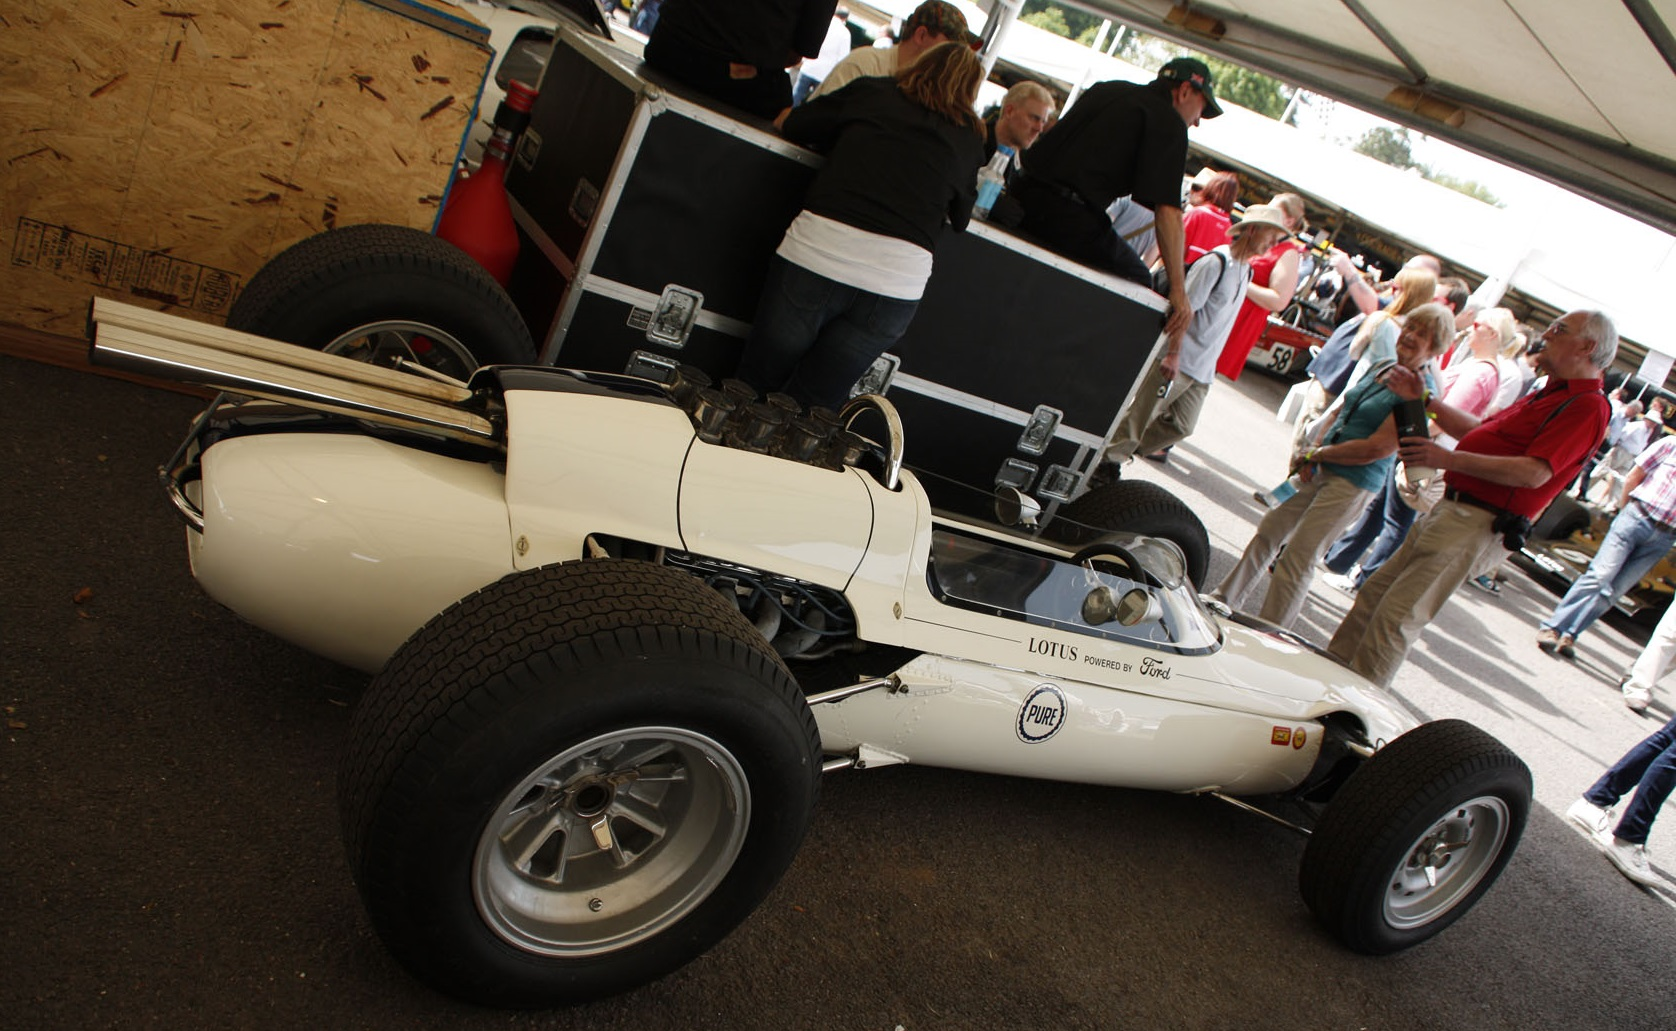 The Lotus 29 was Colin Chapman's first warning to the front-engined establishment.